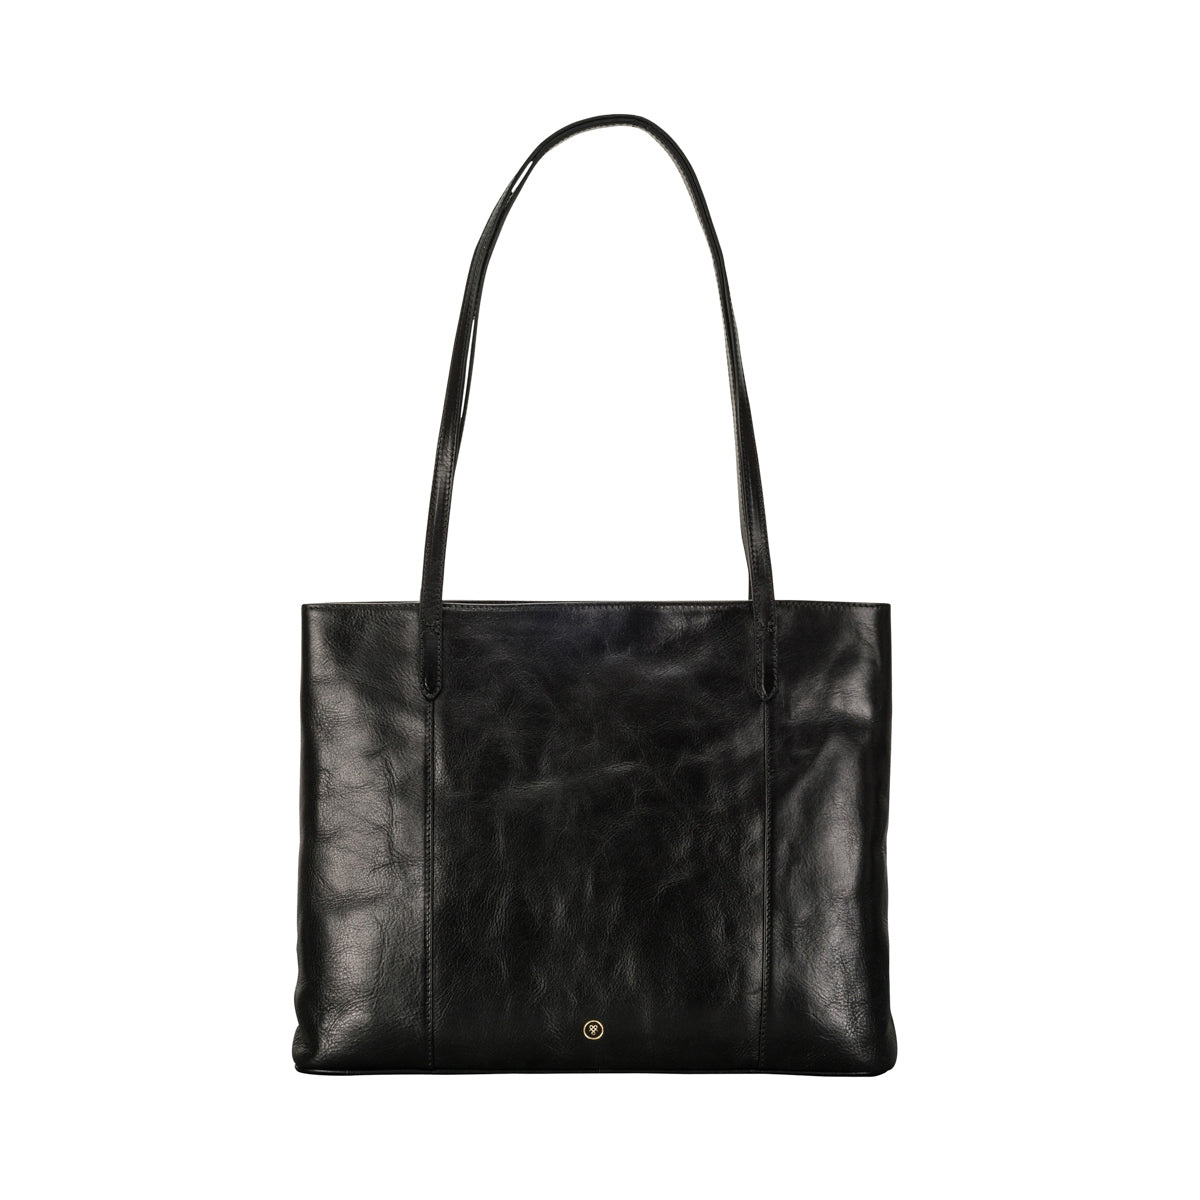 Image 1 of the 'Athenea' Black Veg-Tanned Leather Shopper